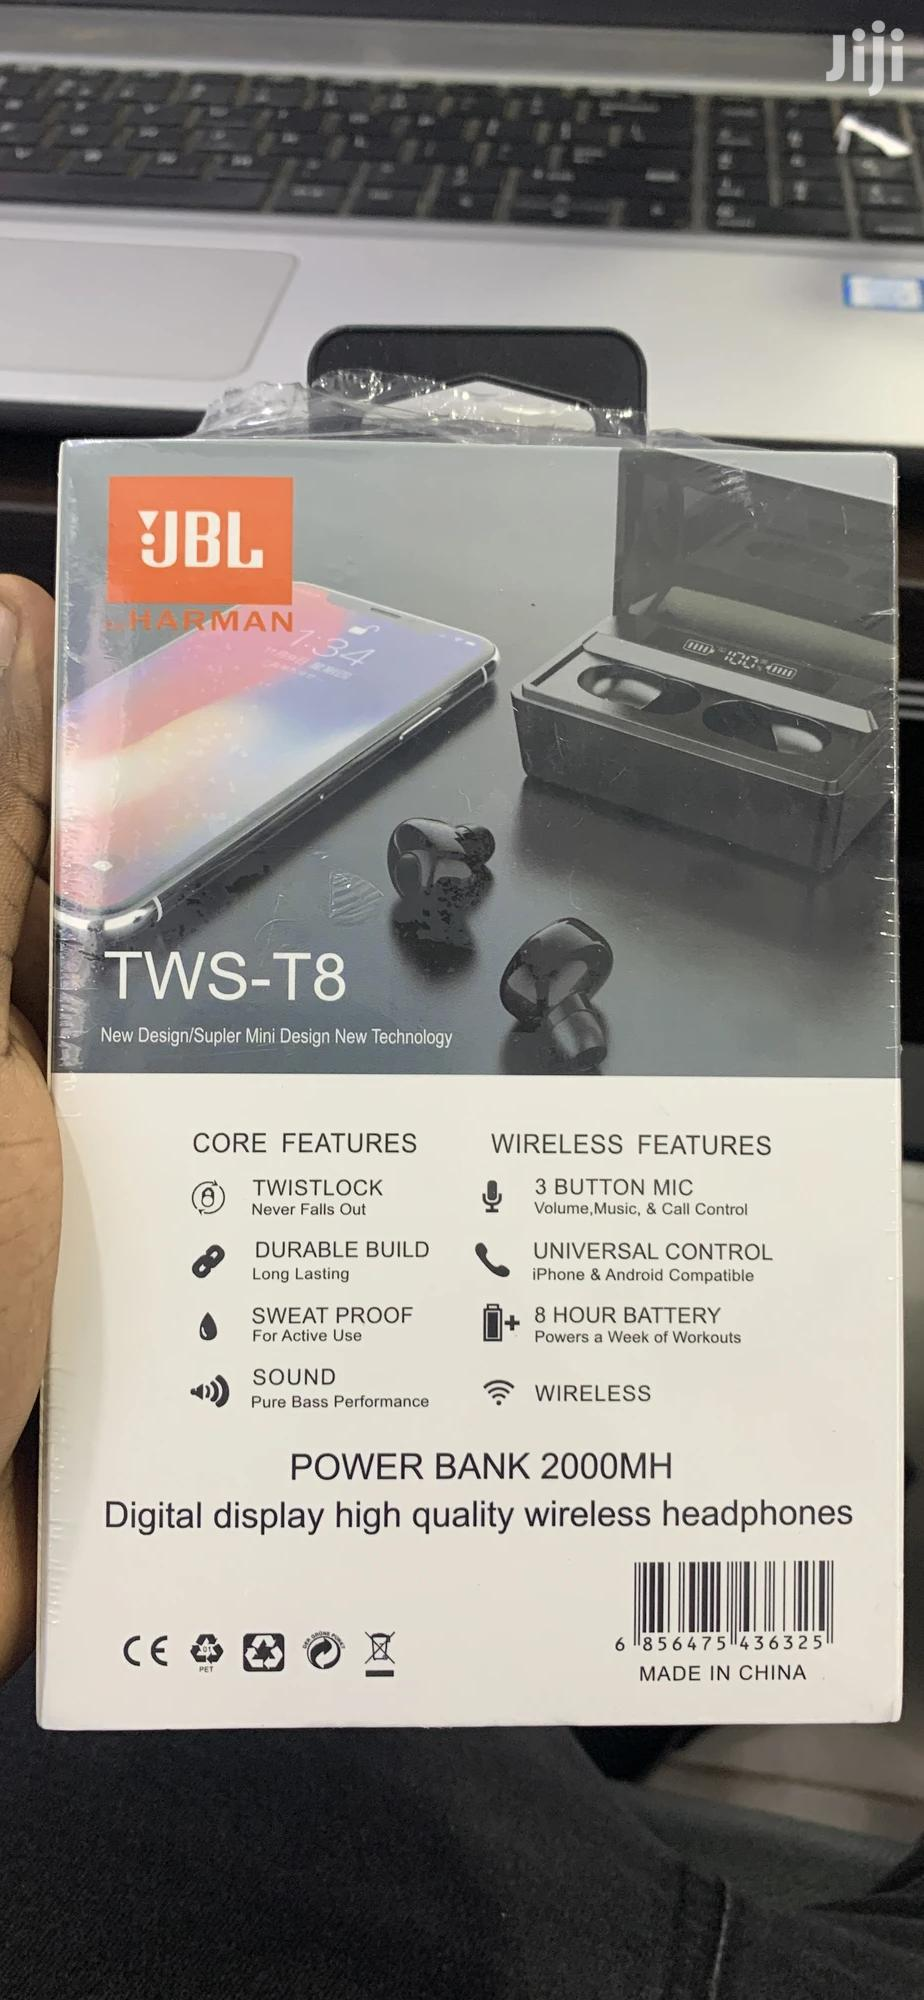 Jbl Tws T8 Earbuds | Headphones for sale in Kampala, Central Region, Uganda